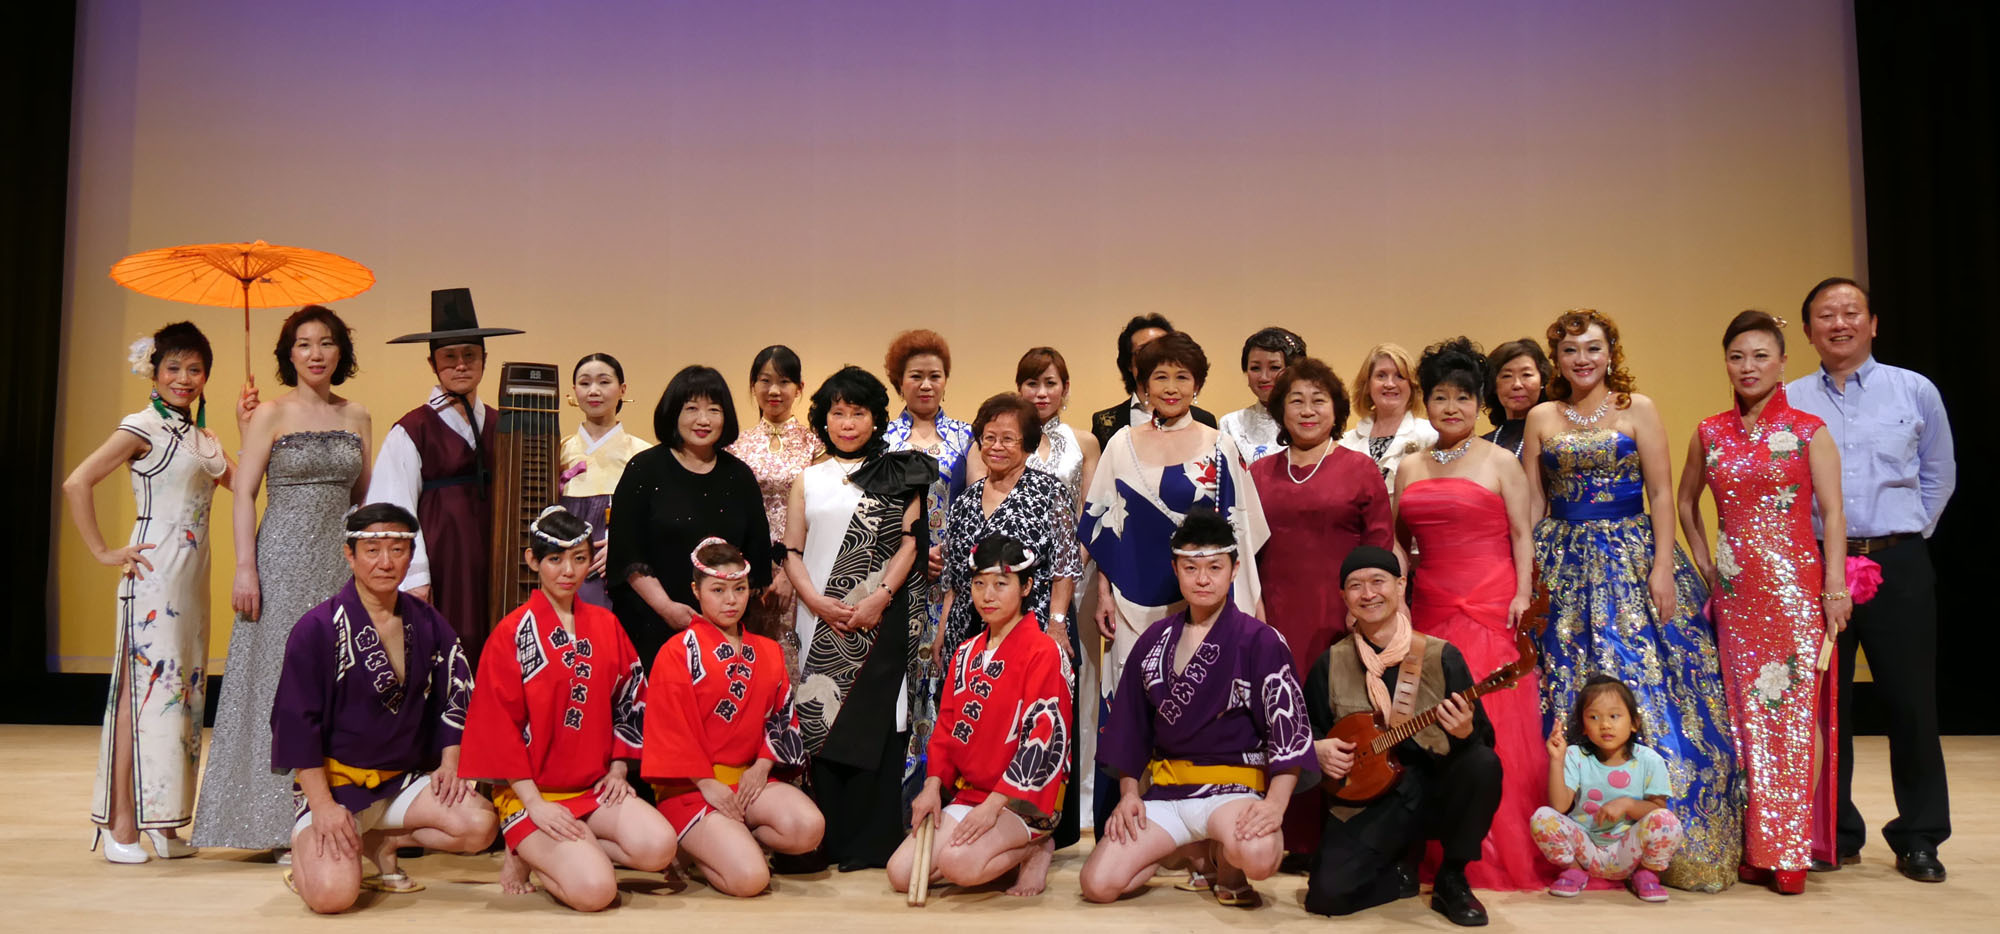 Performers, organizers and supporters of the 25th Annual Kishiko International Concert — Contemporary Piano, Vocal and Traditional Musical instrument Concert from Korea, China, Japan, U.S.A.and Thailand — pose at the curtain raising ceremony at Iino Hall in Tokyo, on July 11. Organized by Worldject International Music NPO and supported by the embassies of Korea, China, Thailand and the United States, the American Center Japan, The Japan Times, Tokyo Beijing International Cultural Communication Association and the Nippon Taiko Foundation Hanna-Chopan, the event saw opening remarks by Chinese Embassy Counselor Cheng Zeng on behalf of the diplomatic corps in Tokyo. Wishing for world peace and friendship, Worldject Chairperson Kishiko Kawaguchi (fifth from left, center row) donated a portion of ticket sales to Zeng; Yupadee Bunnag; spouse of the Thai Ambassador; and Masako Kuriyama, vice-president of the Smart Senior Council of Japan for their charitable activities. | WORLDJECT INTERNATIONAL MUSIC NPO